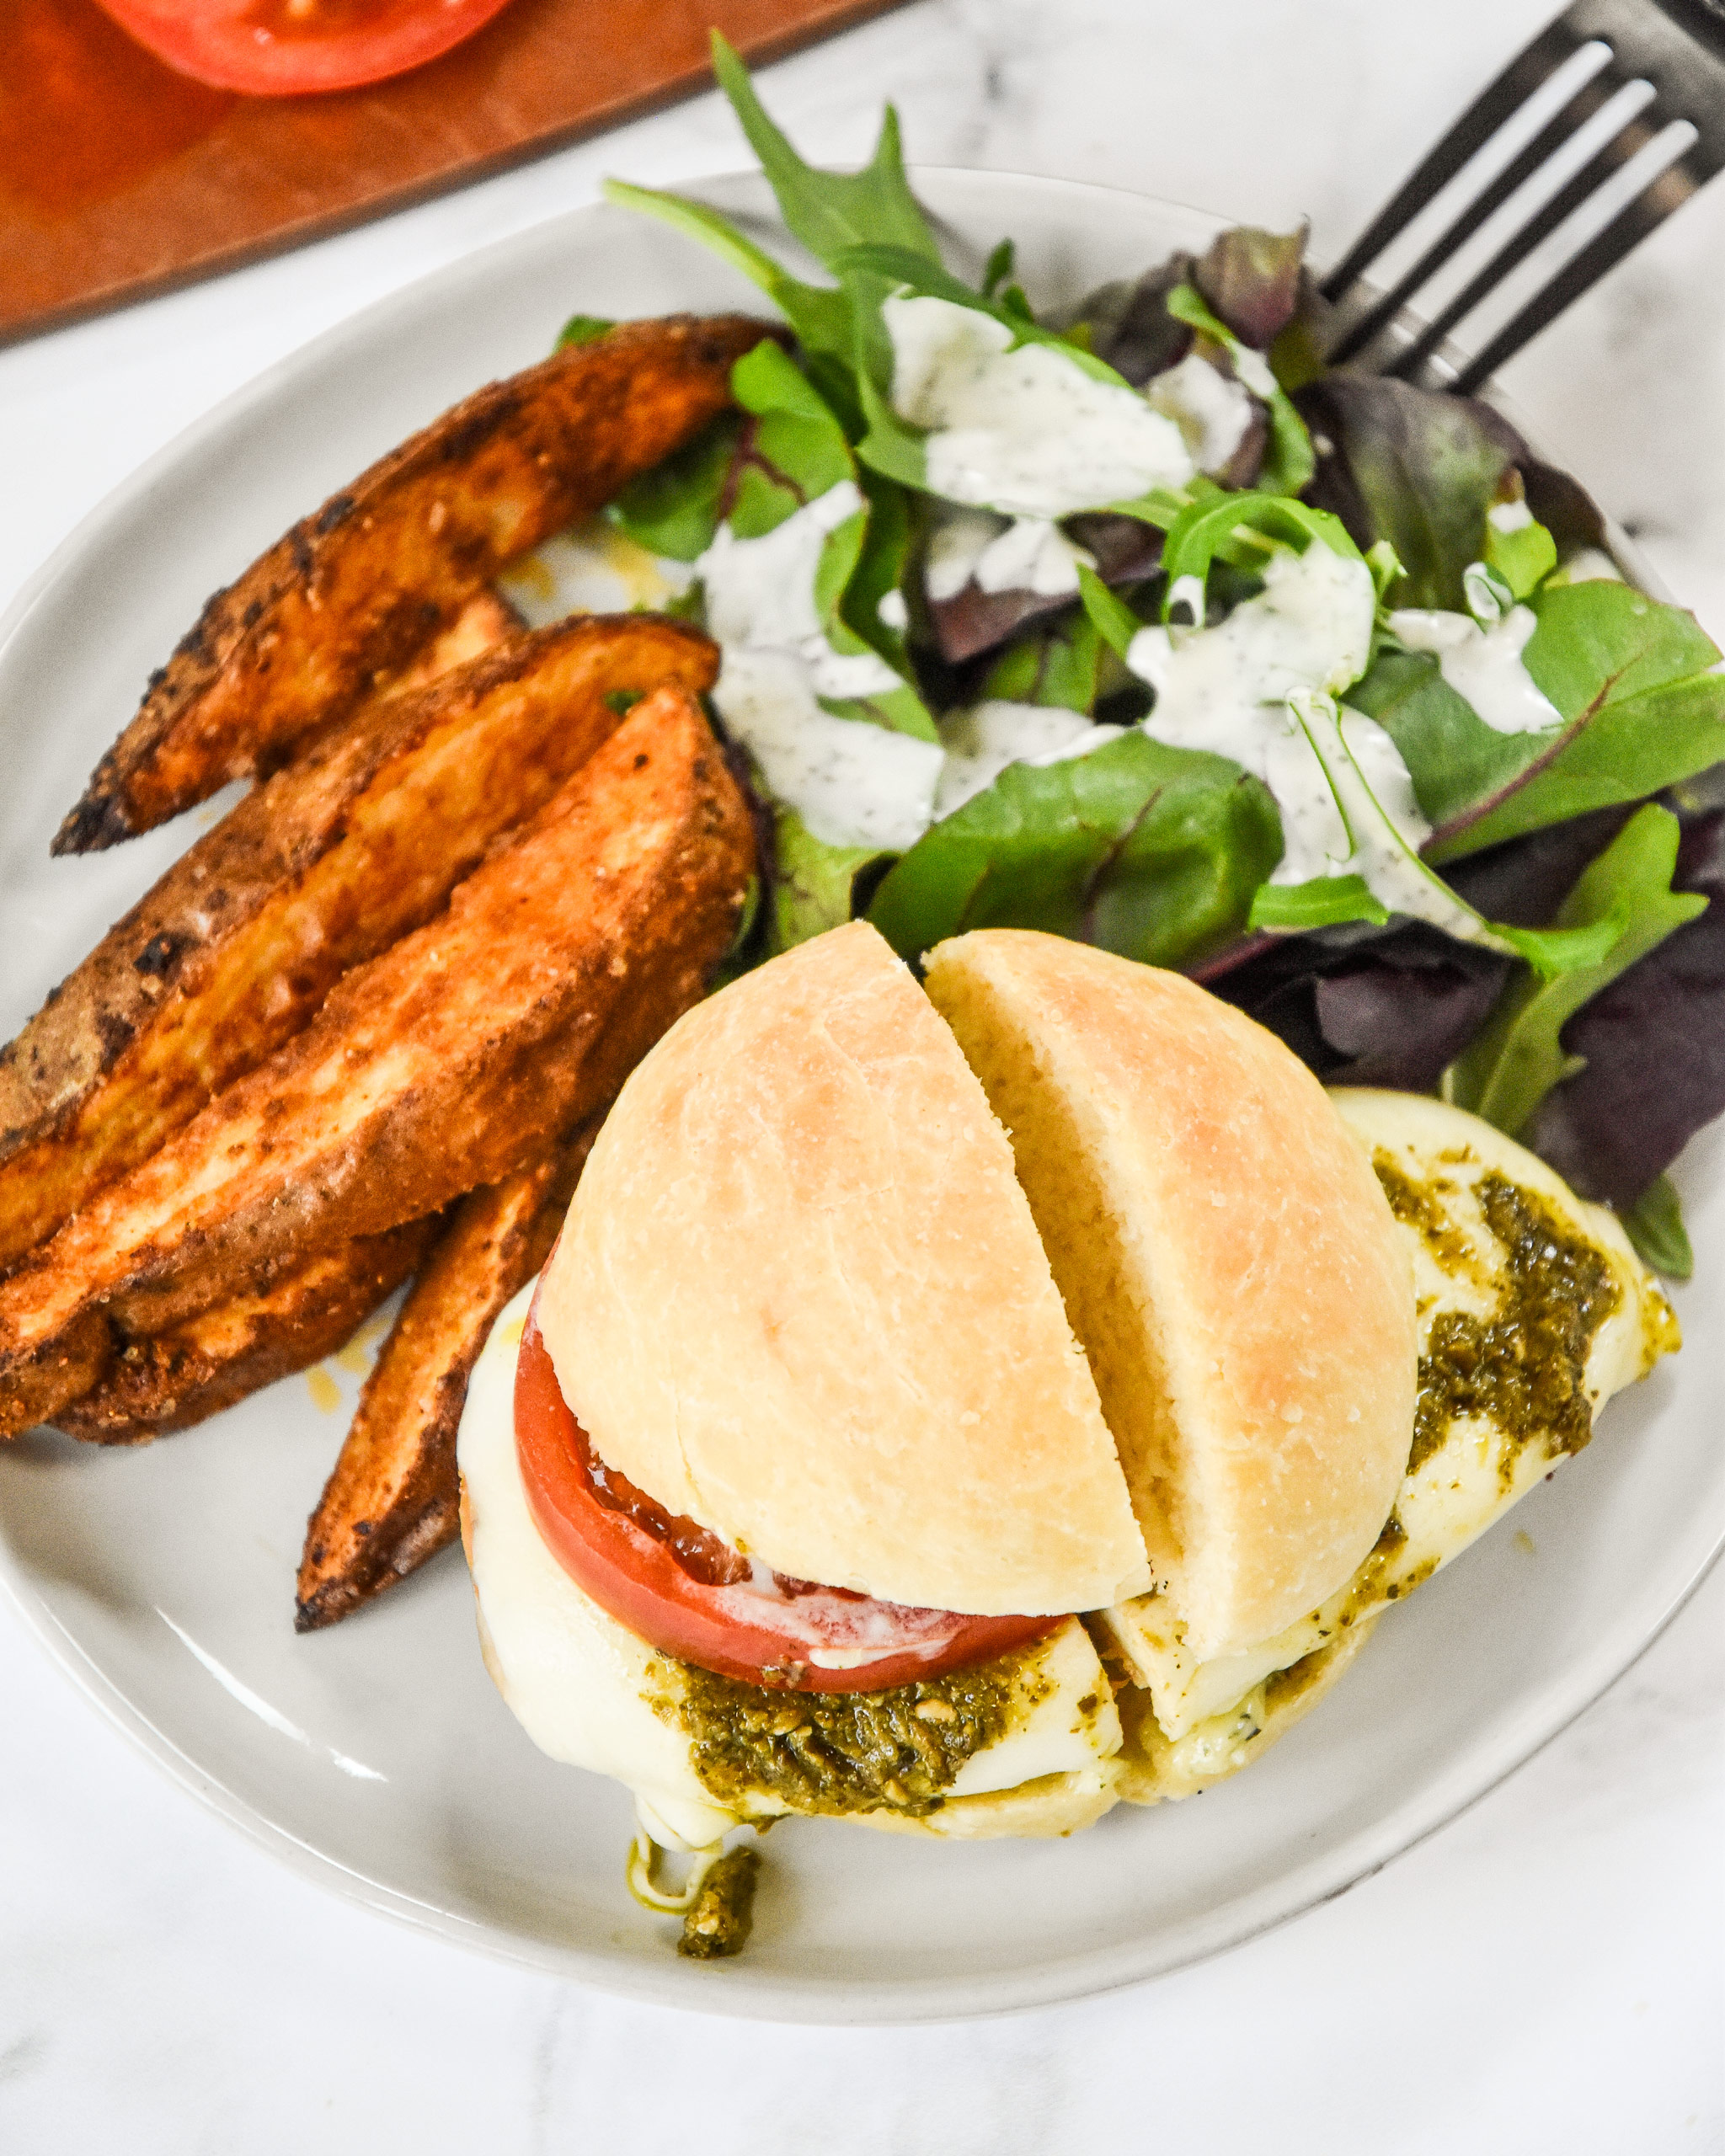 pesto chicken mozzarella sandwich on a plate with potato wedges and a salad.